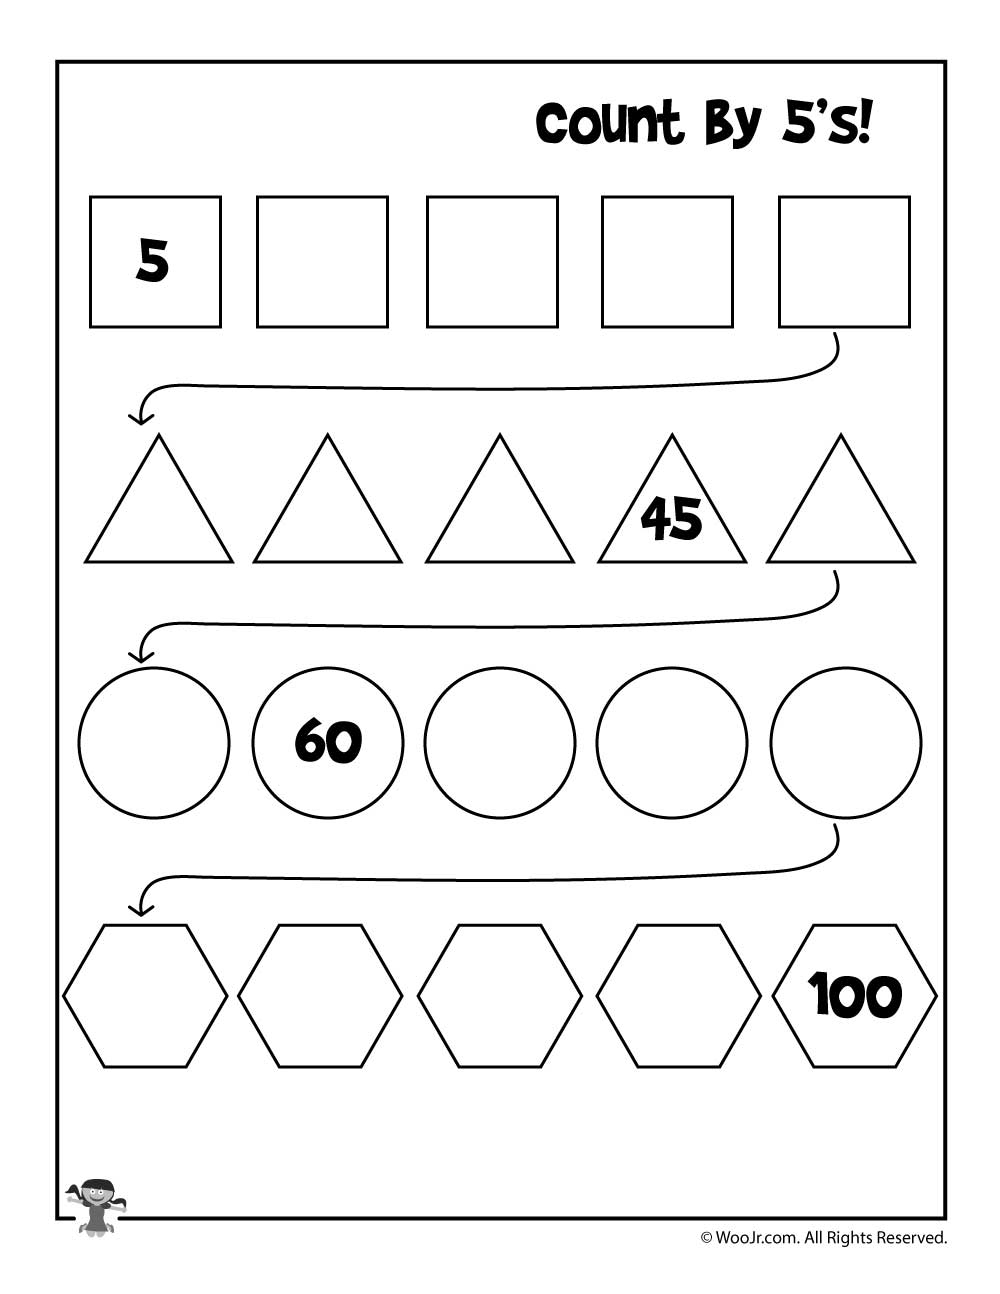 Simple Skip Counting Worksheets To Print | Woo! Jr. Kids Activities | Skip Counting By 3 Printable Worksheets